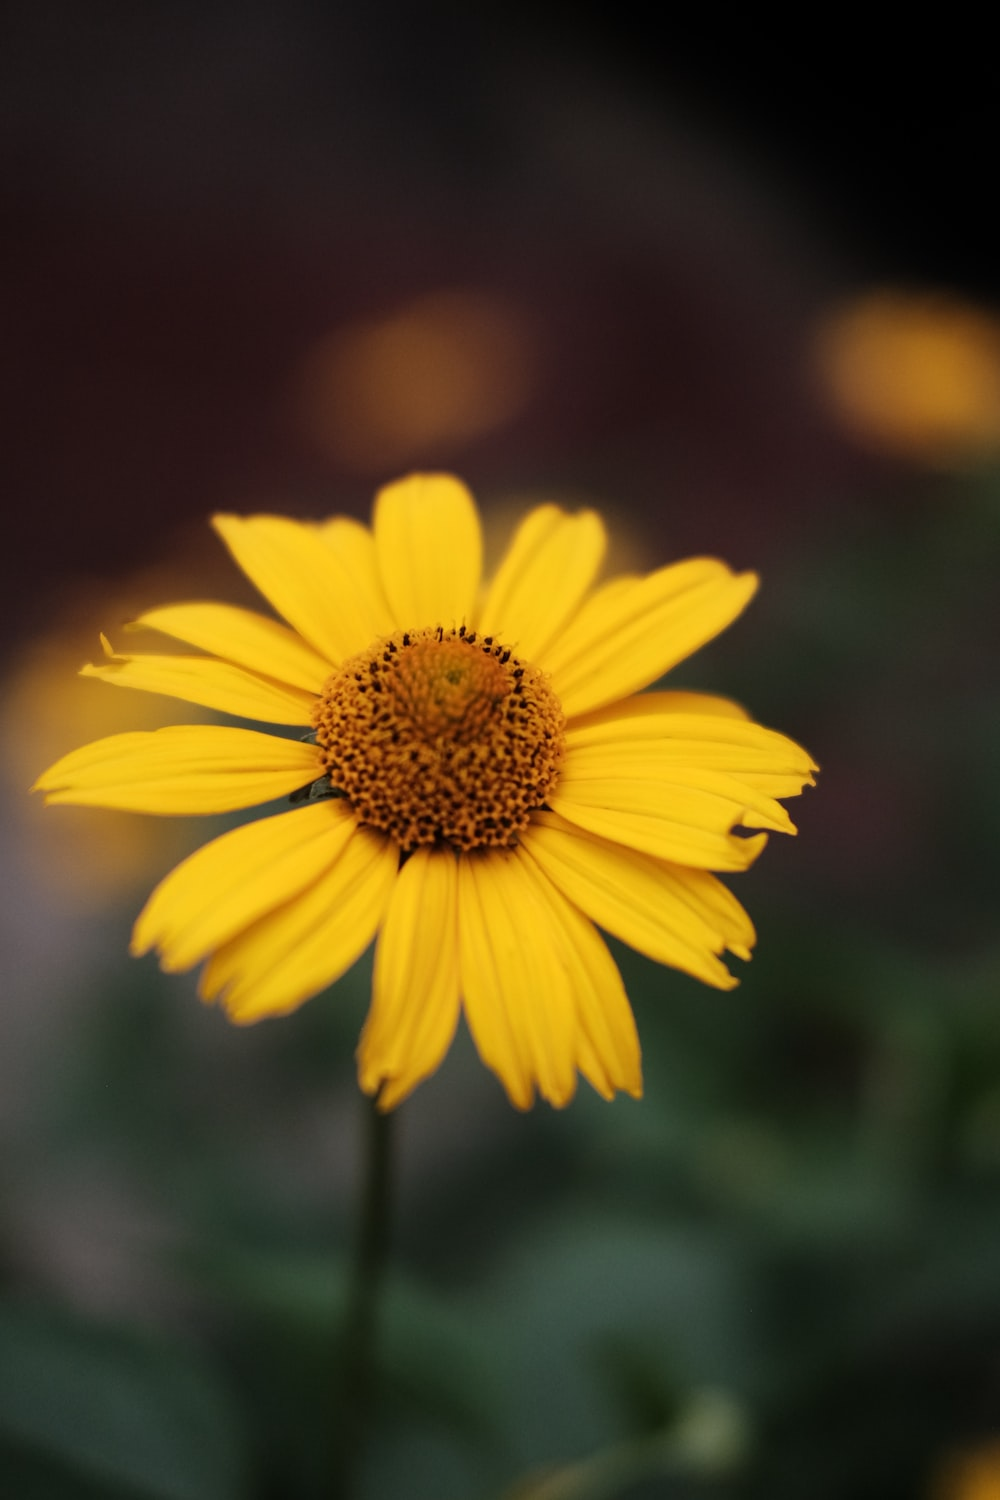 yellow daisy in close up photography